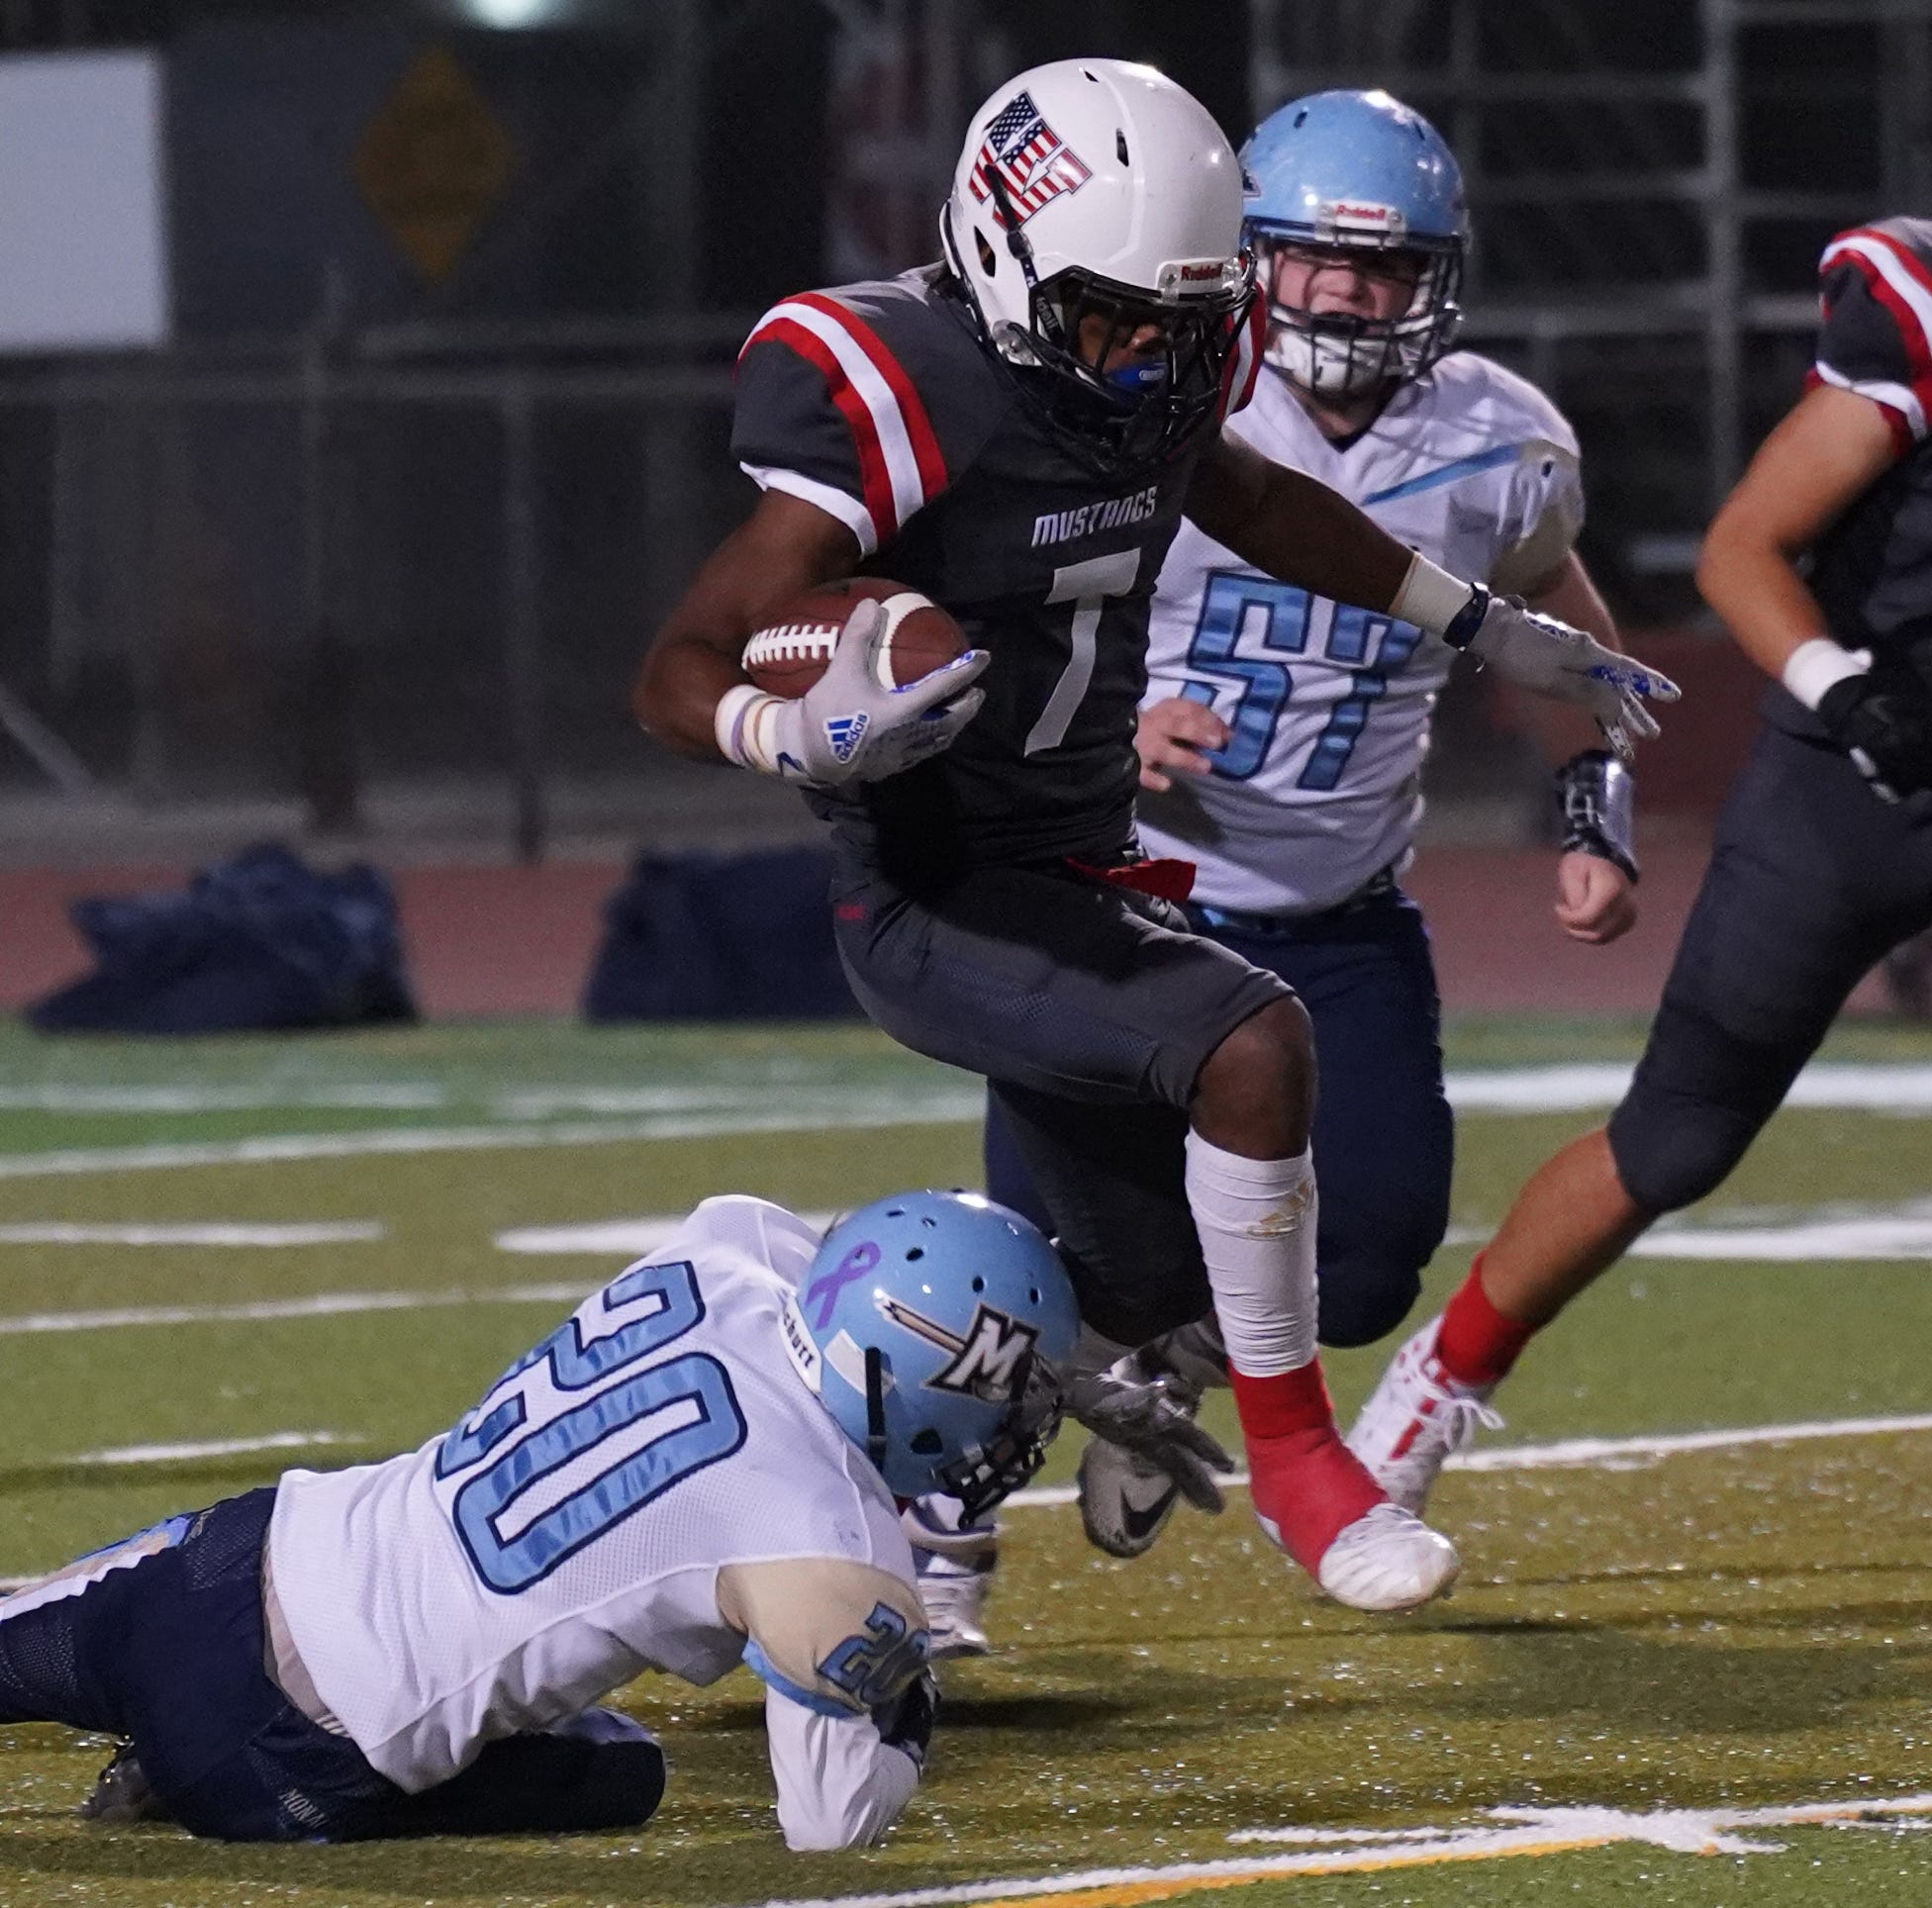 Tulare Western routs Monache, rolls into Bell Game undefeated